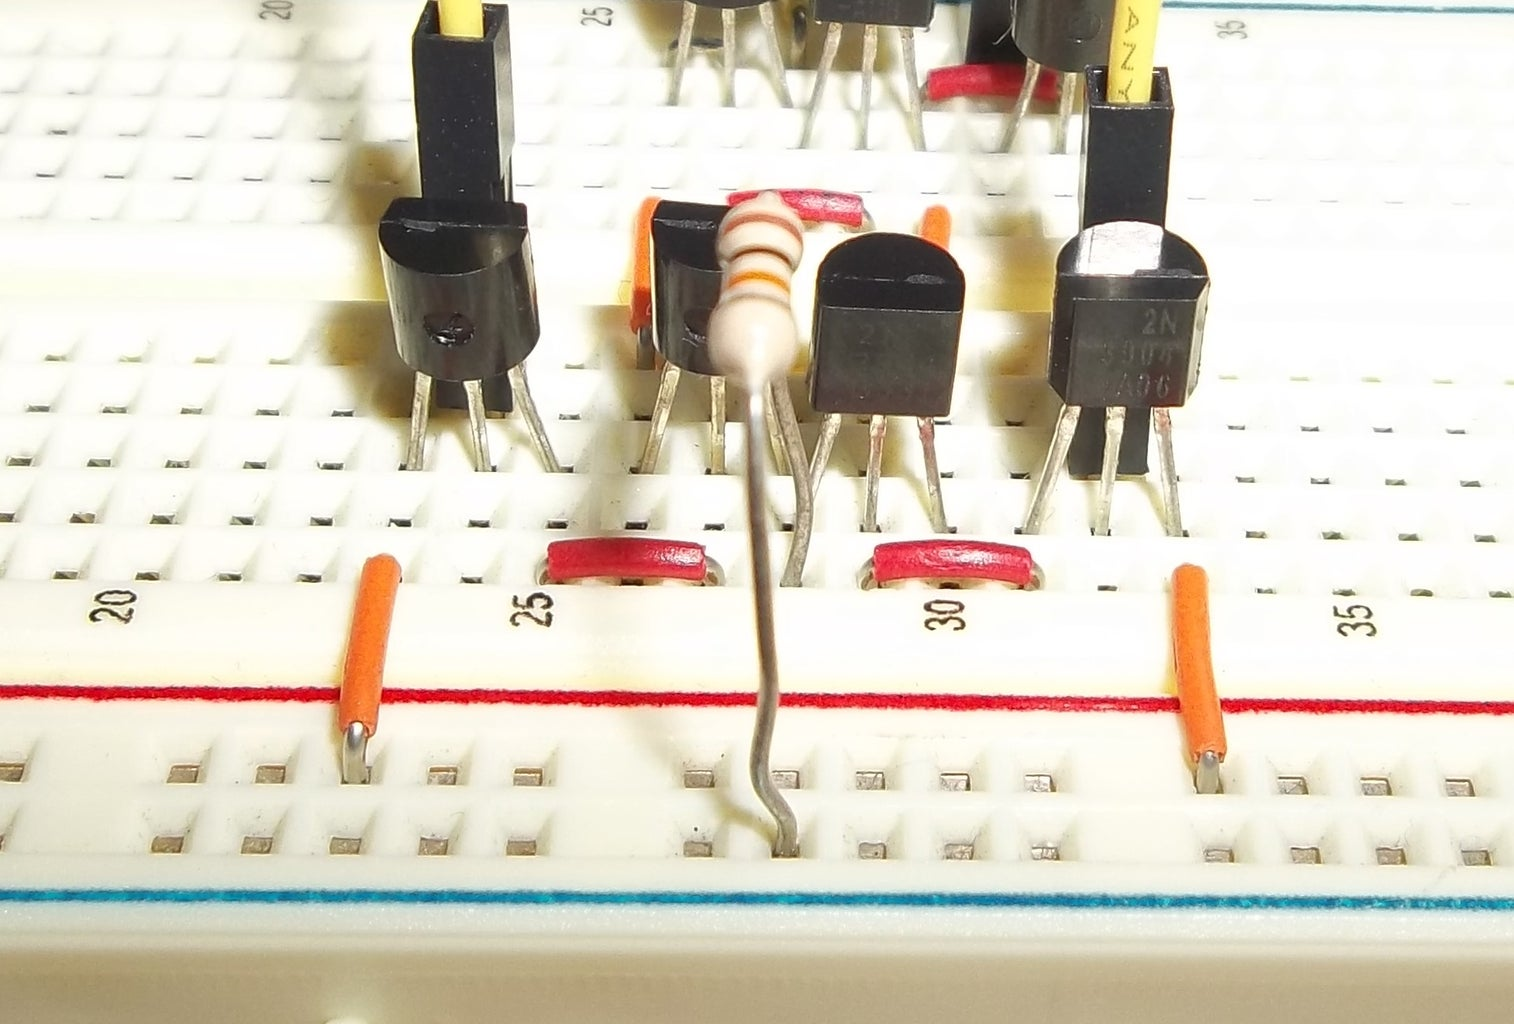 Building the Threshold Comparator